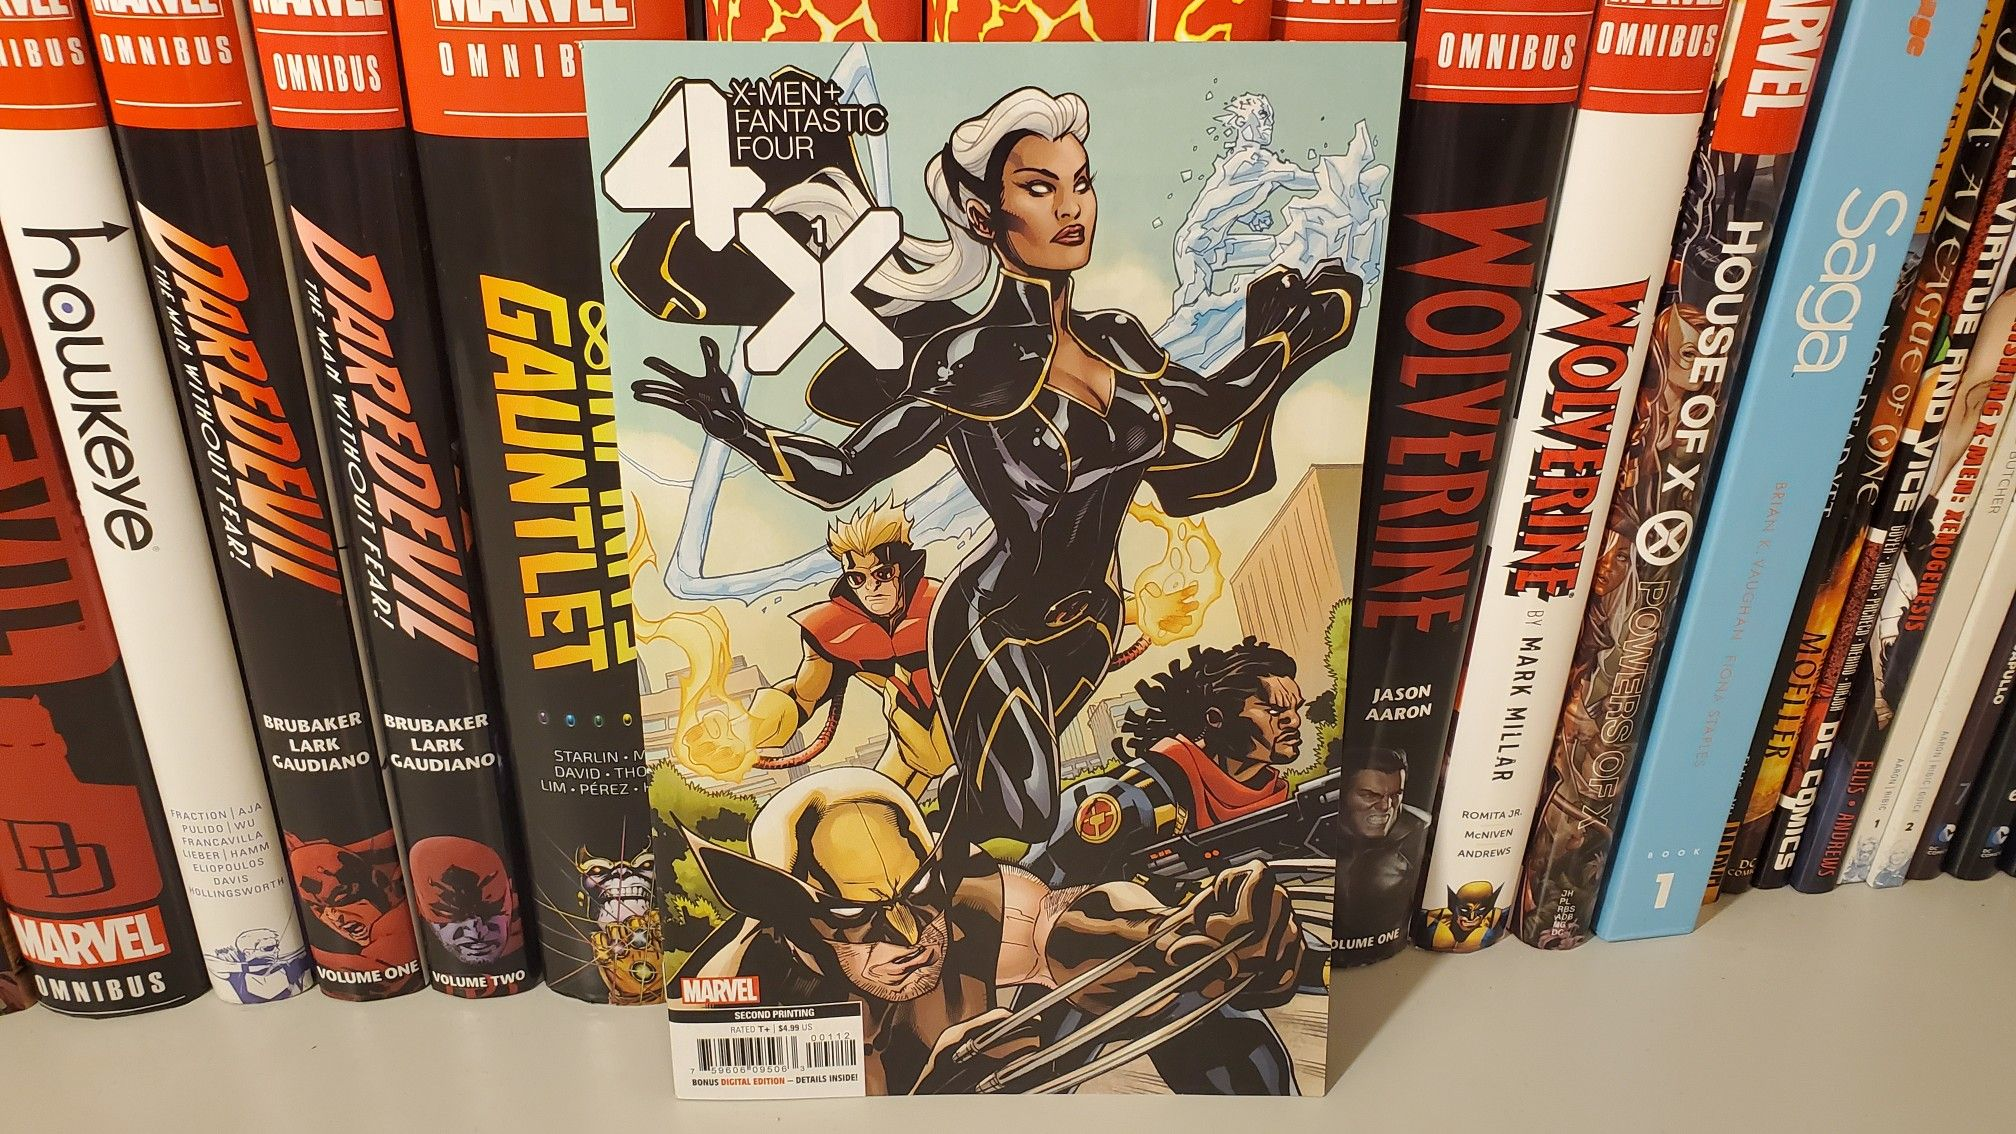 X Men Fantastic Four Vol 1 Issue 1 Overview Video Https M Youtube Com Watch V Hvvqen0d3ny Xmen Wolveri In 2020 Comic Book Collection Nightcrawler